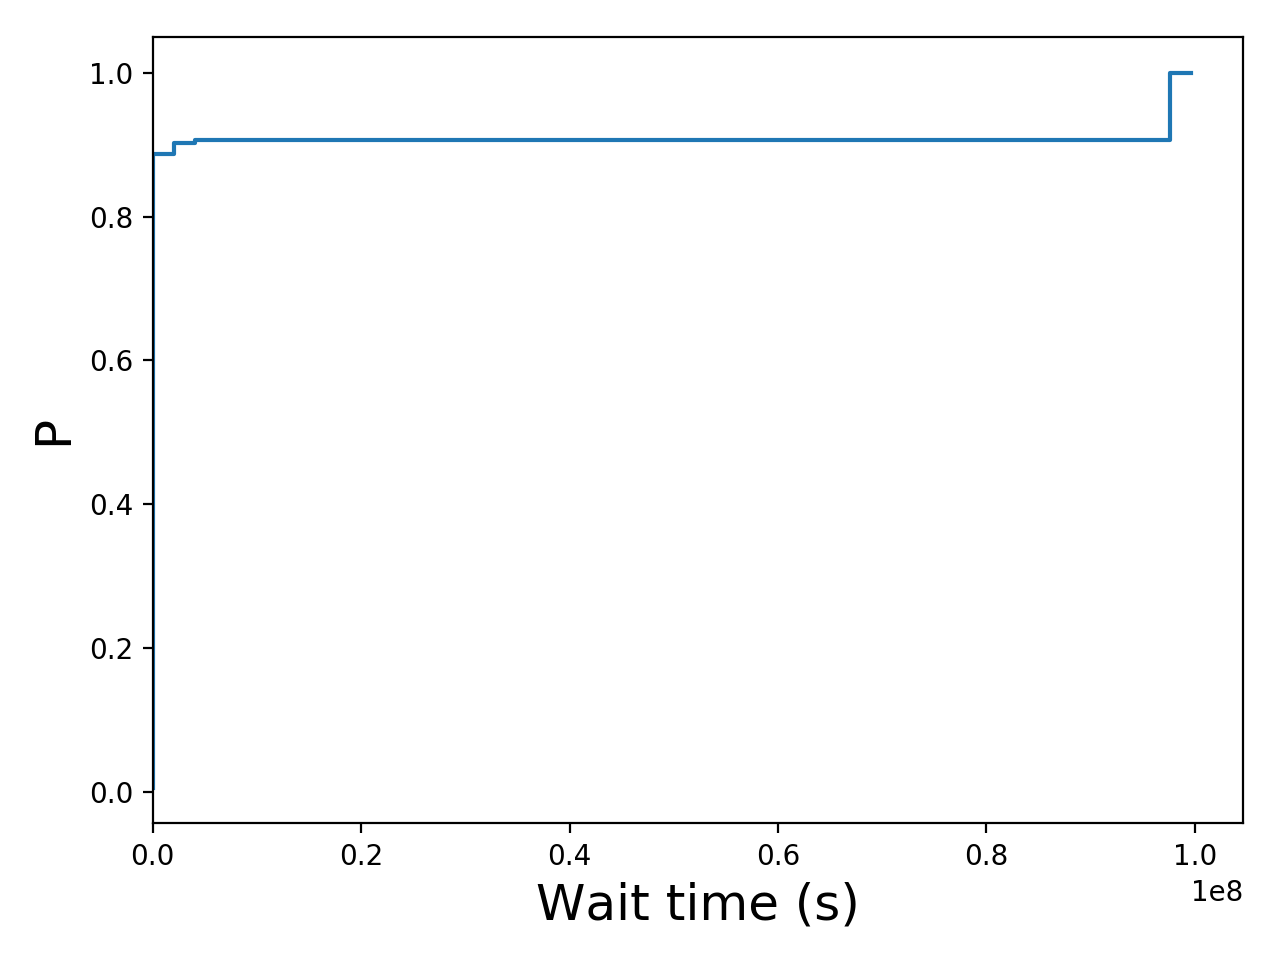 Task wait time CDF graph for the Pegasus_P7 trace.